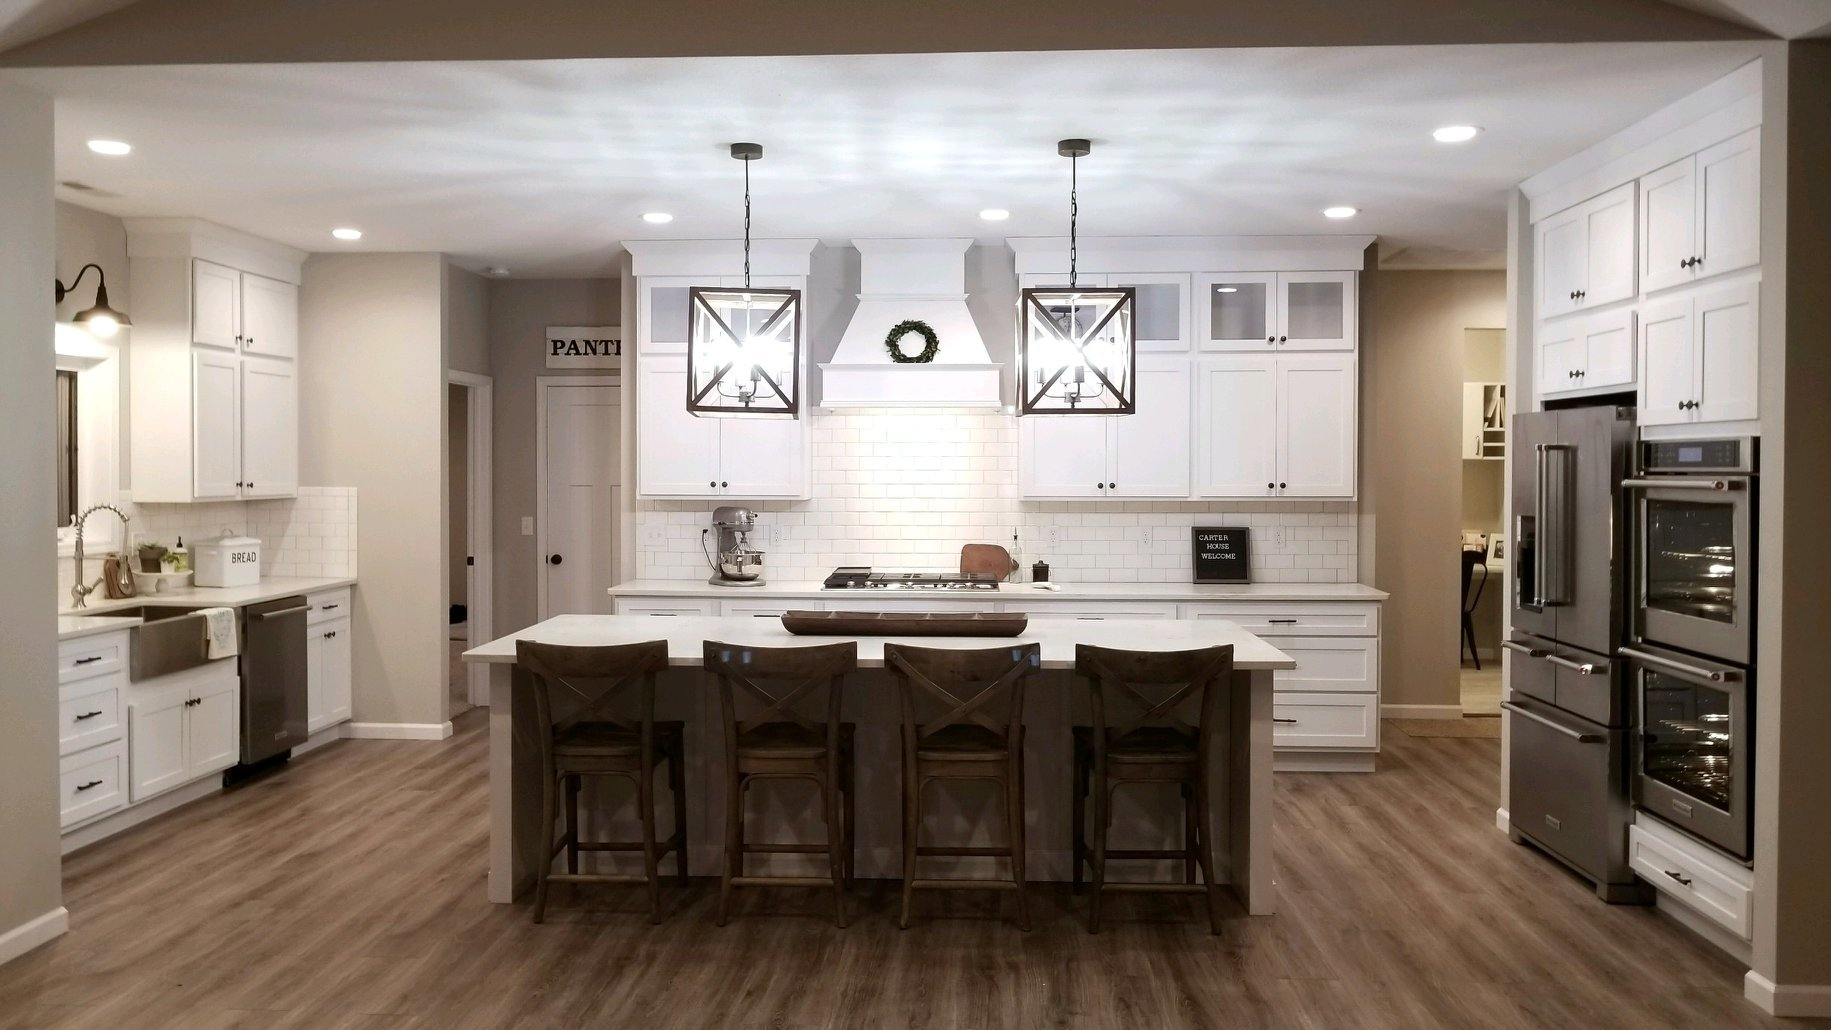 Asheville Cabinets Wholesale Kitchen and Bath Cabinetry